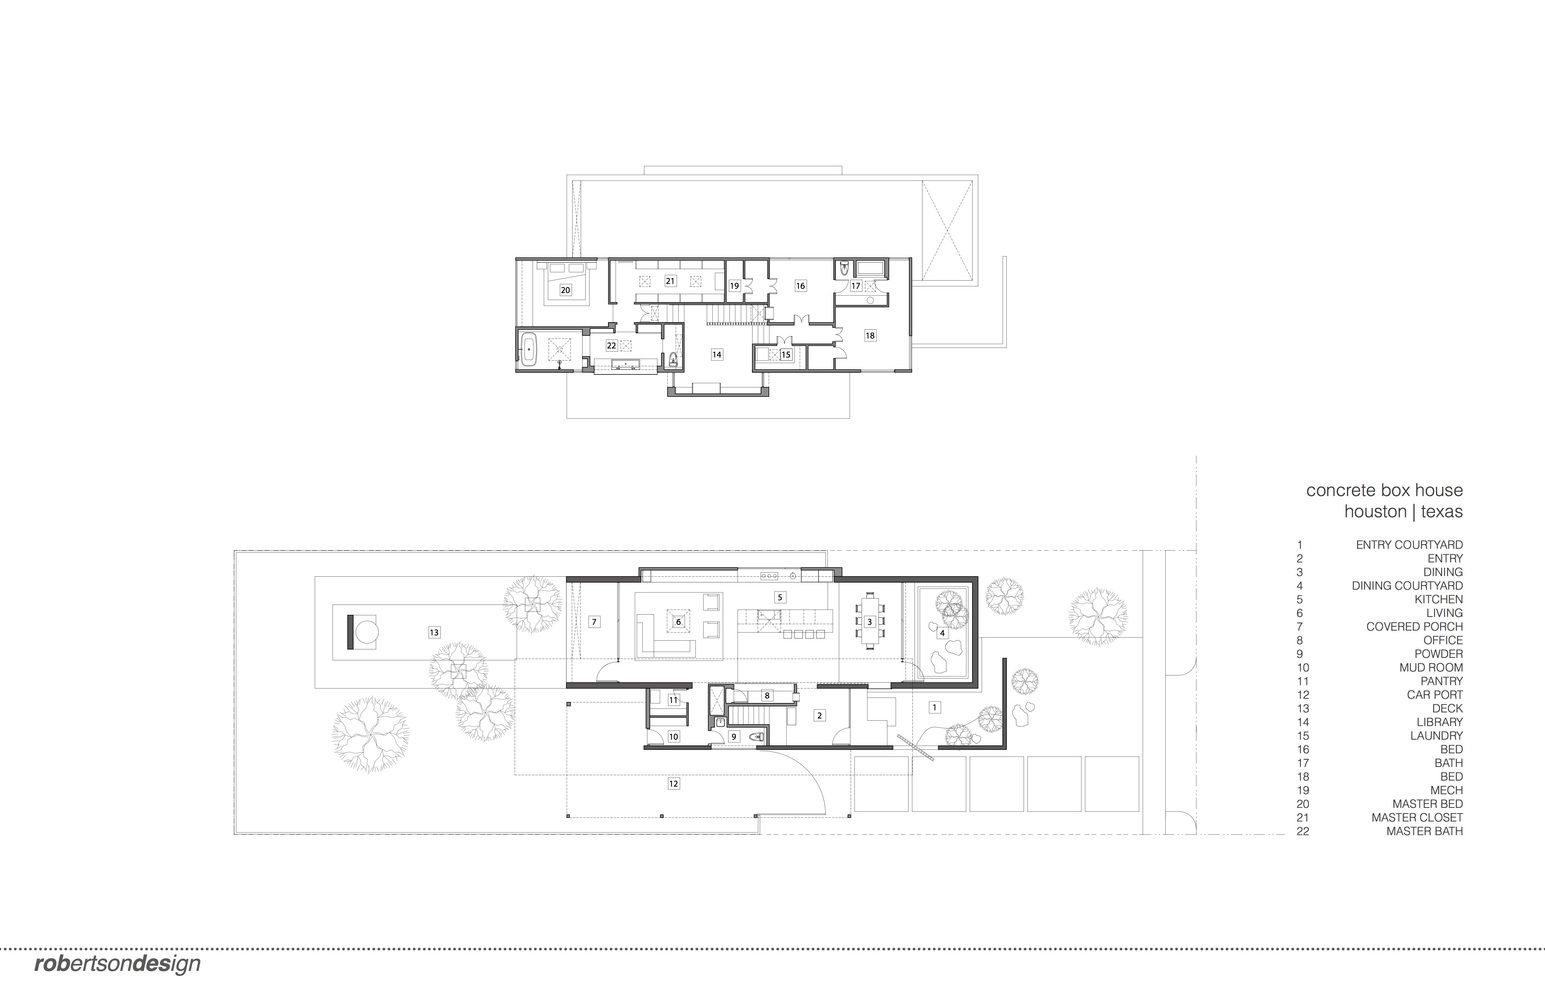 gallery of concrete box house robertson design 32 box houses concrete box house floor plan kitchen between primary living spaces